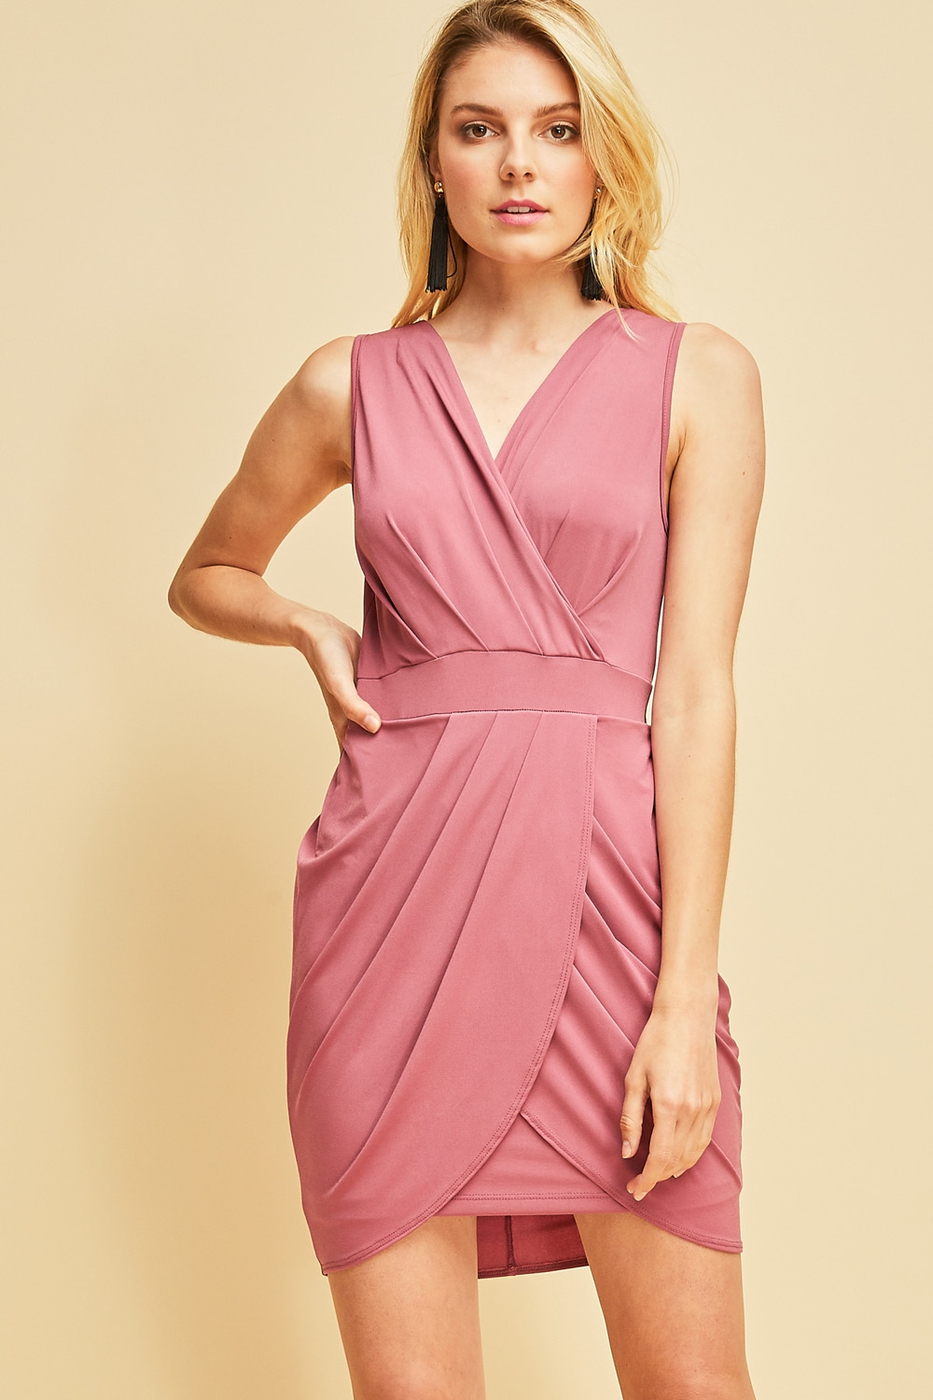 Surplice v-neck dress - orangeshine.com